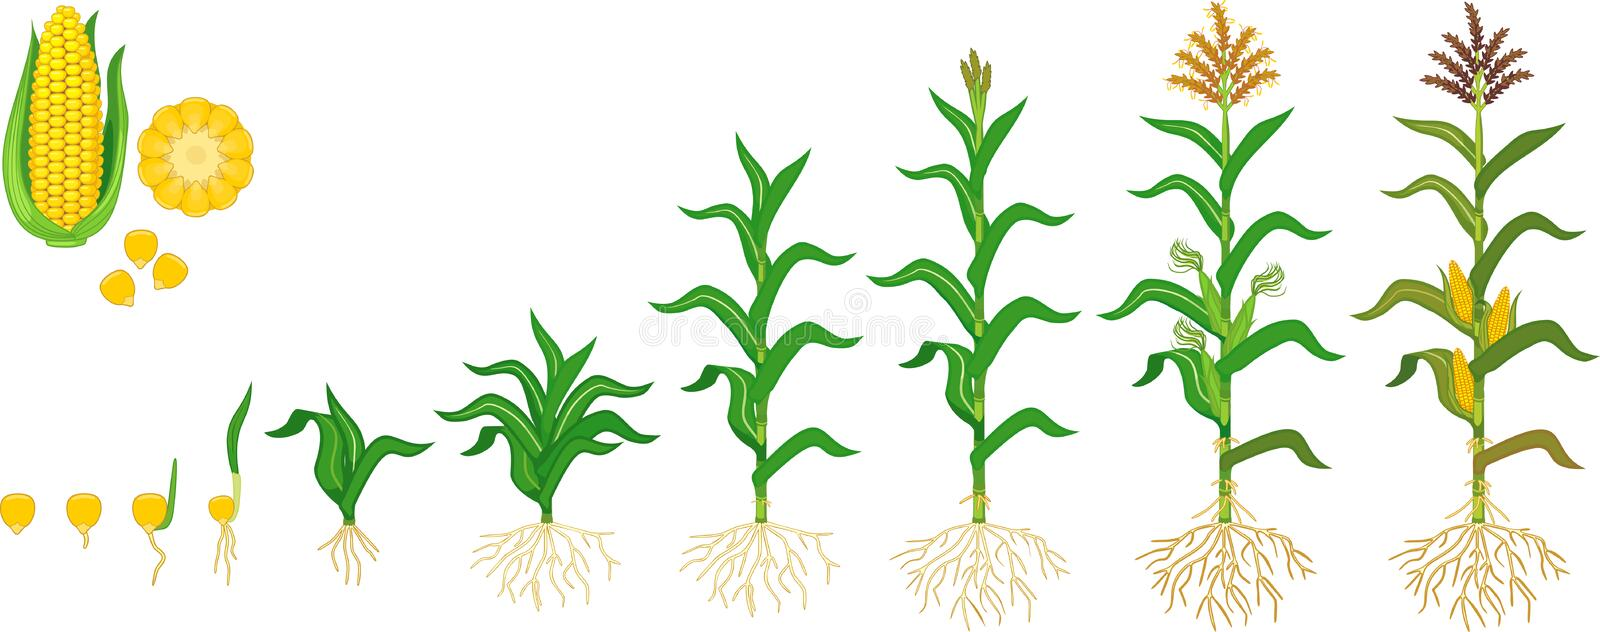 Life cycle of corn maize plant. Growth stages from seeding to flowering and fruiting plant isolated on white background vector illustration